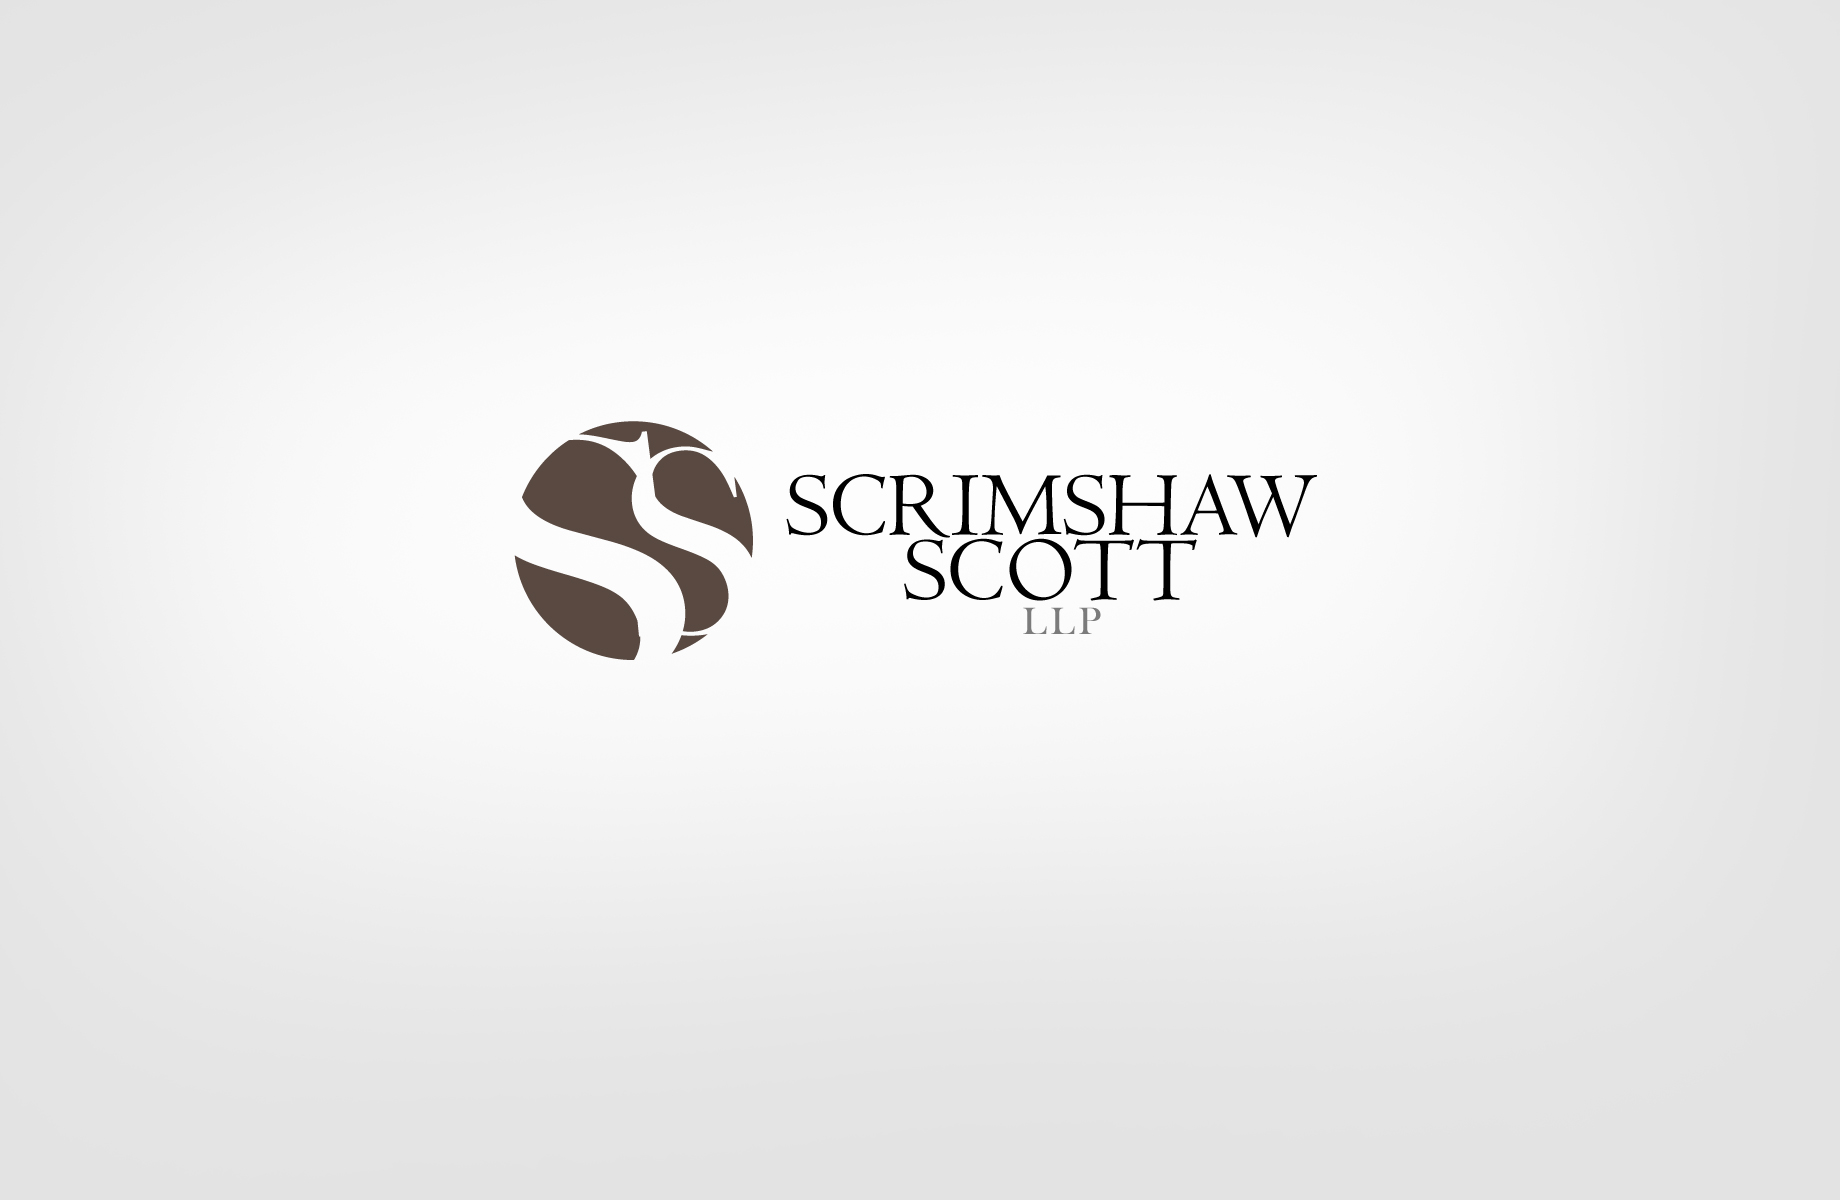 Logo Design by Jan Chua - Entry No. 21 in the Logo Design Contest Creative Logo Design for Scrimshaw Scott LLP.